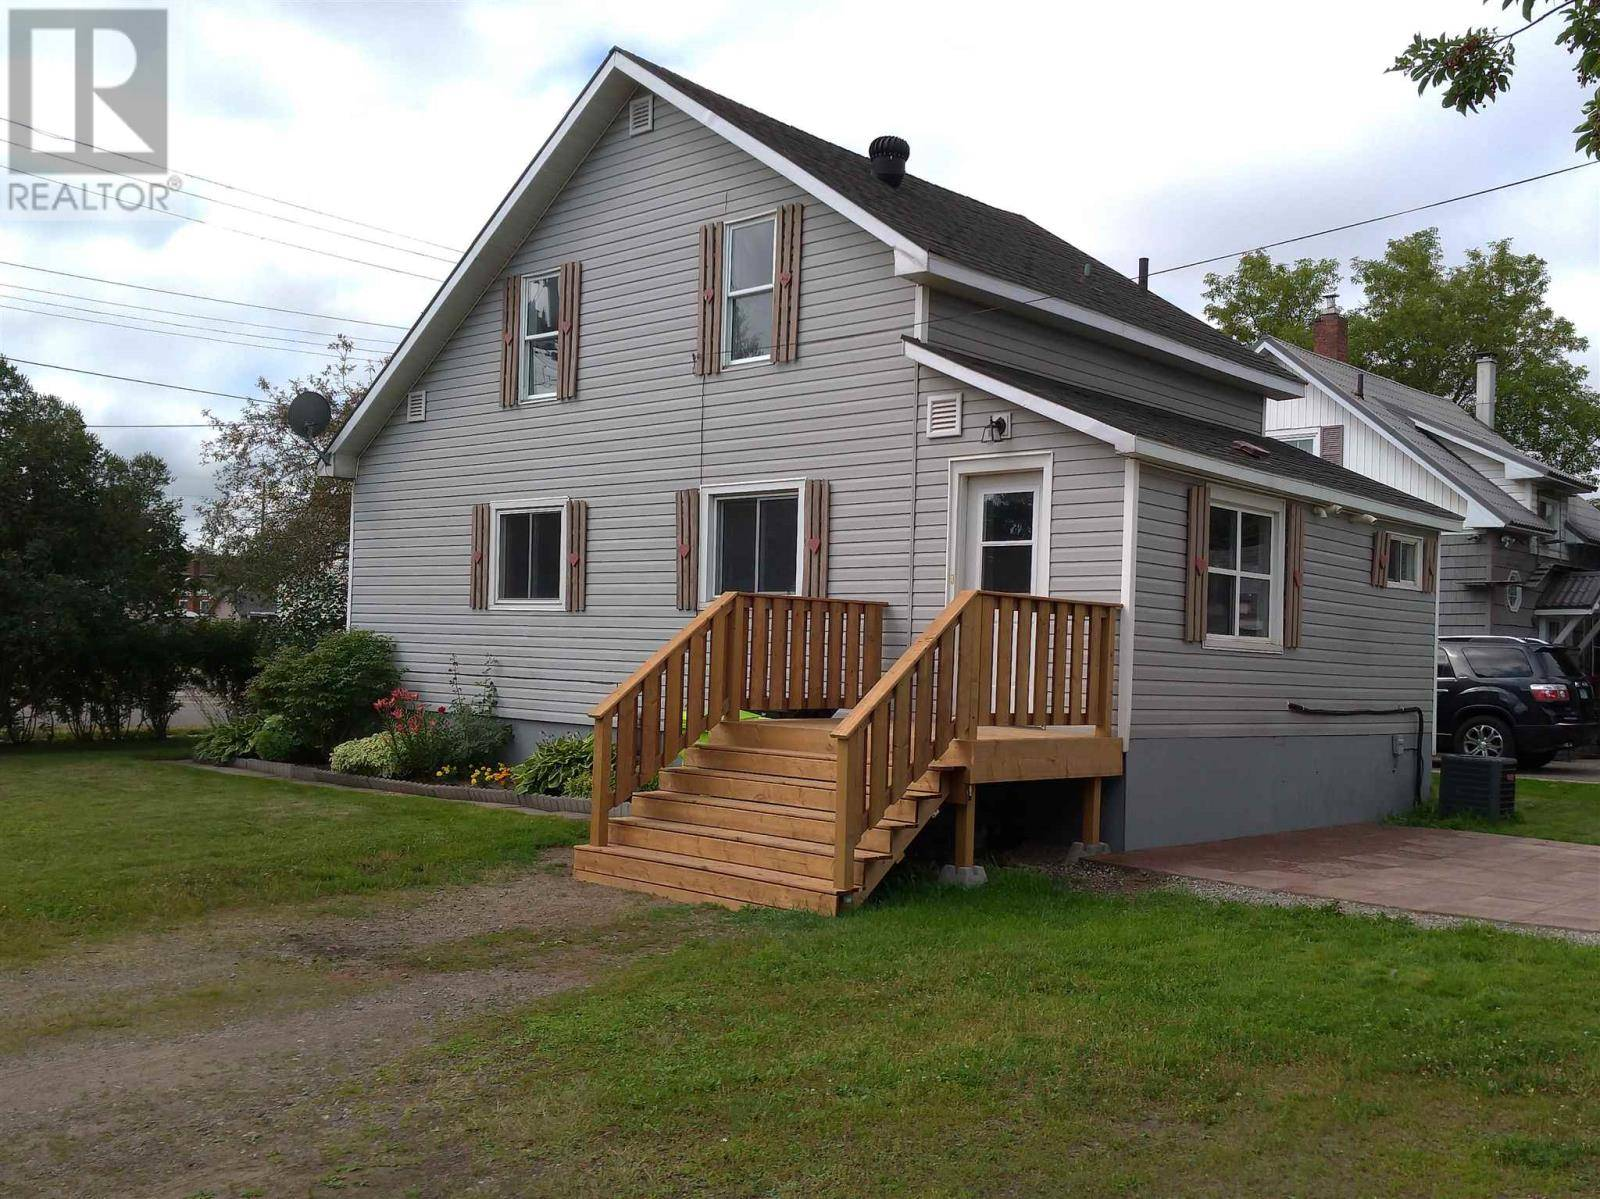 House for sale at 348 Douglas St Sault Ste. Marie Ontario - MLS: SM126554